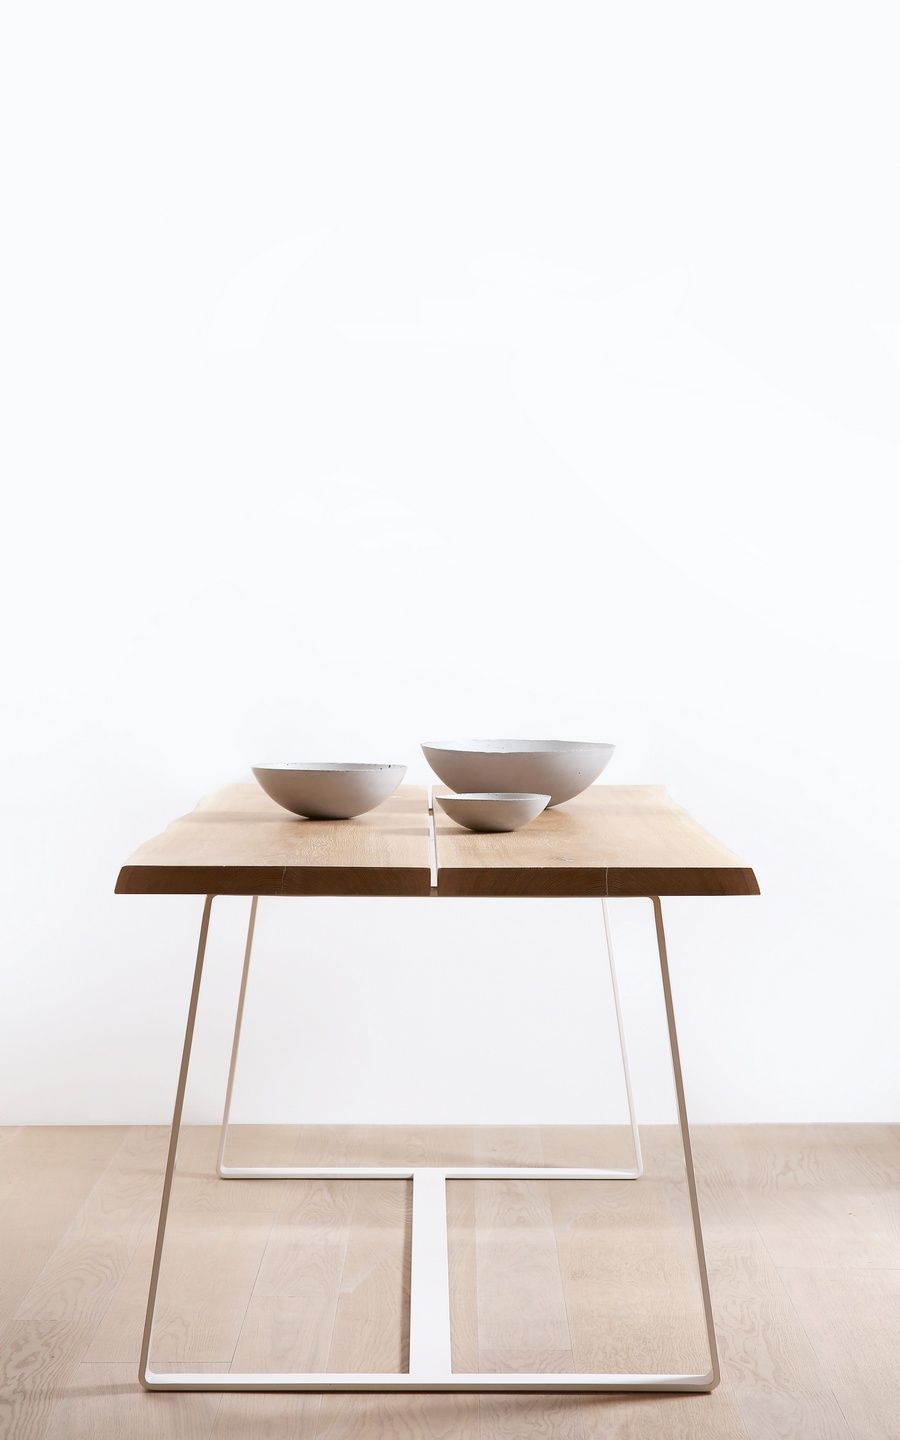 Solid Oak Table With White Steel Legs